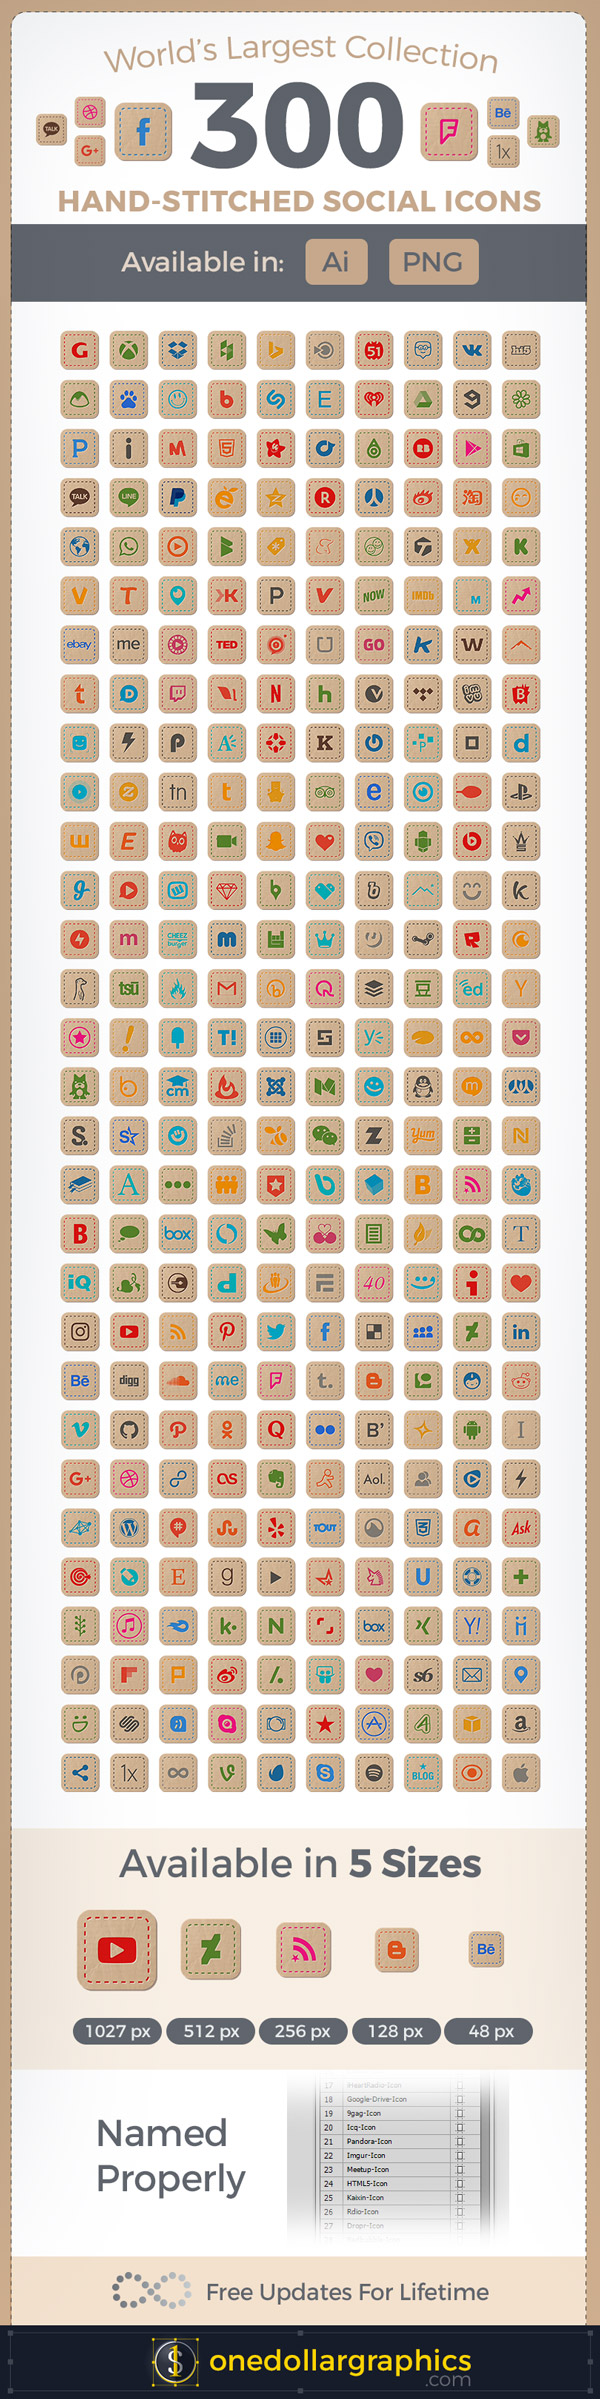 300-Hand-Stitched-Premium-Social-Media-Icons-For-Art-&-Craft-Websites-600